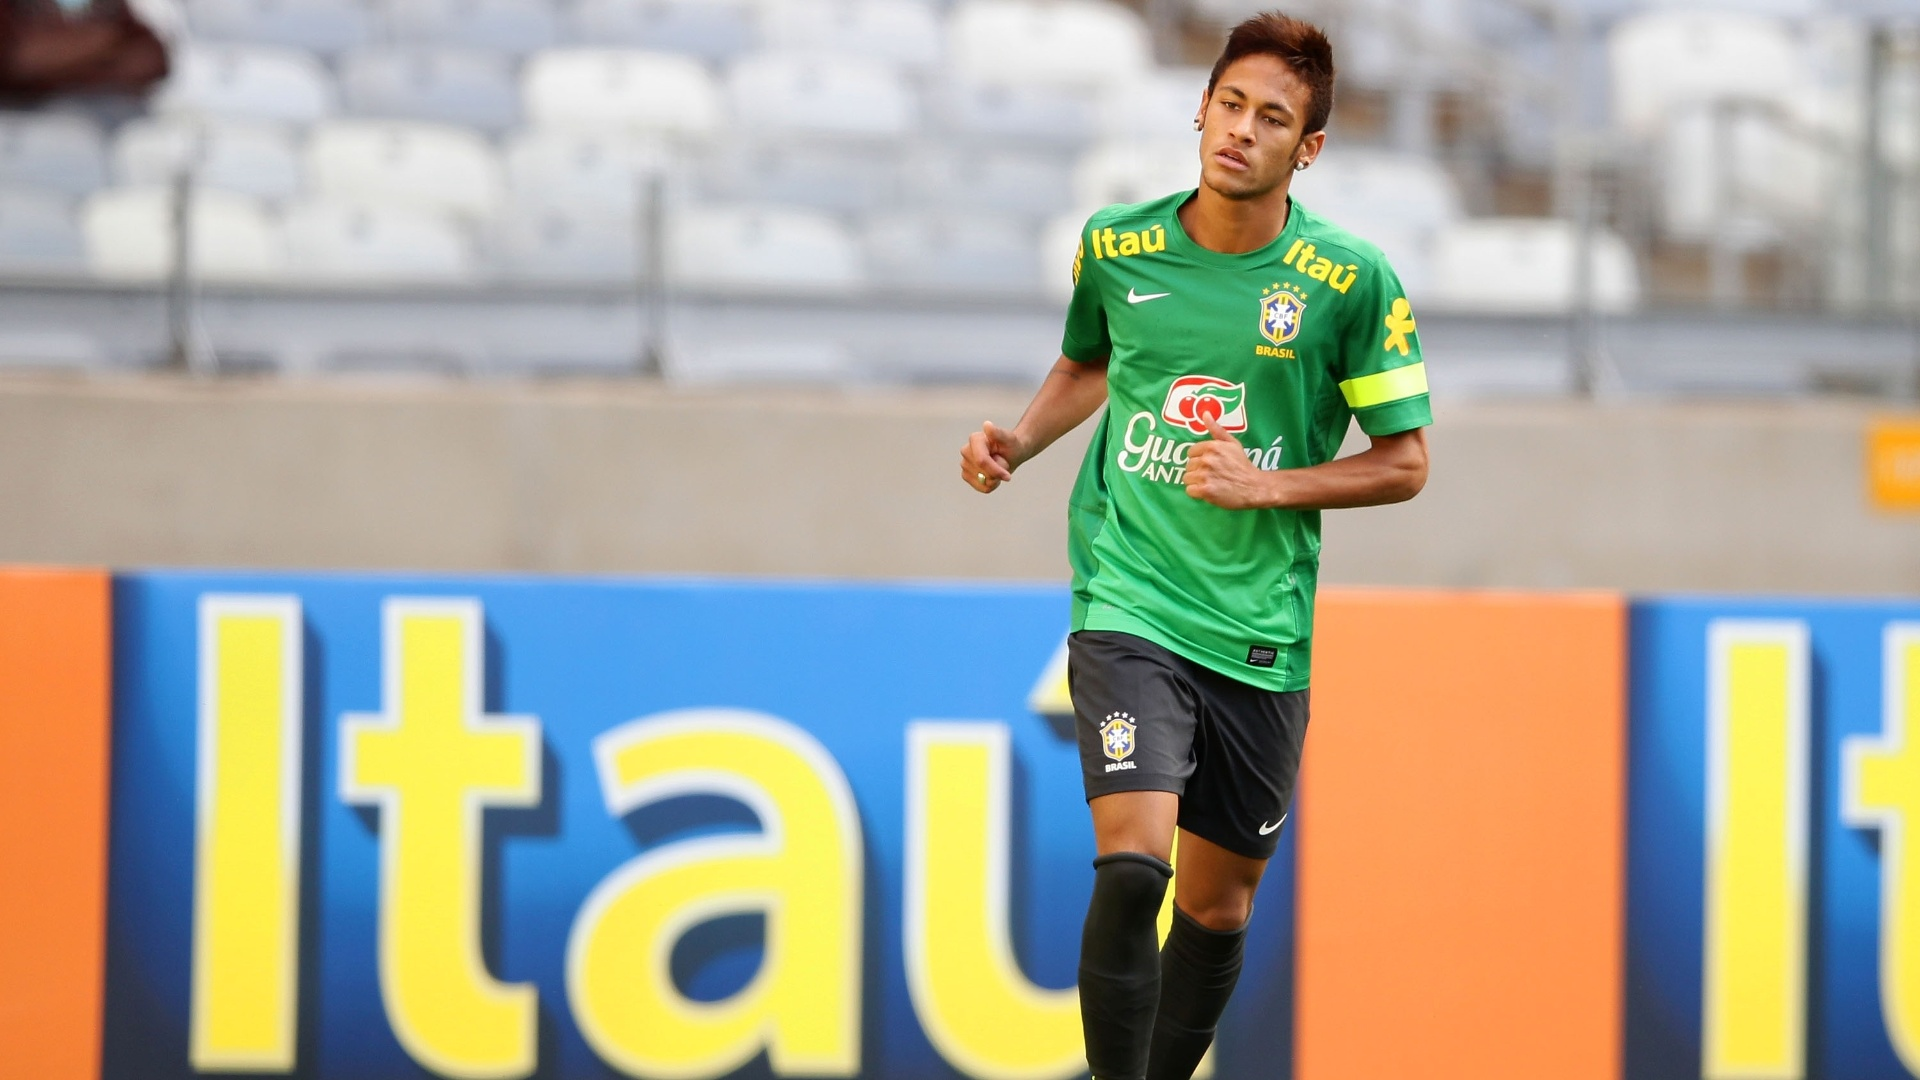 23.abr.2013 - Atacante Neymar treina no Mineiro para o amistoso contra o Chile